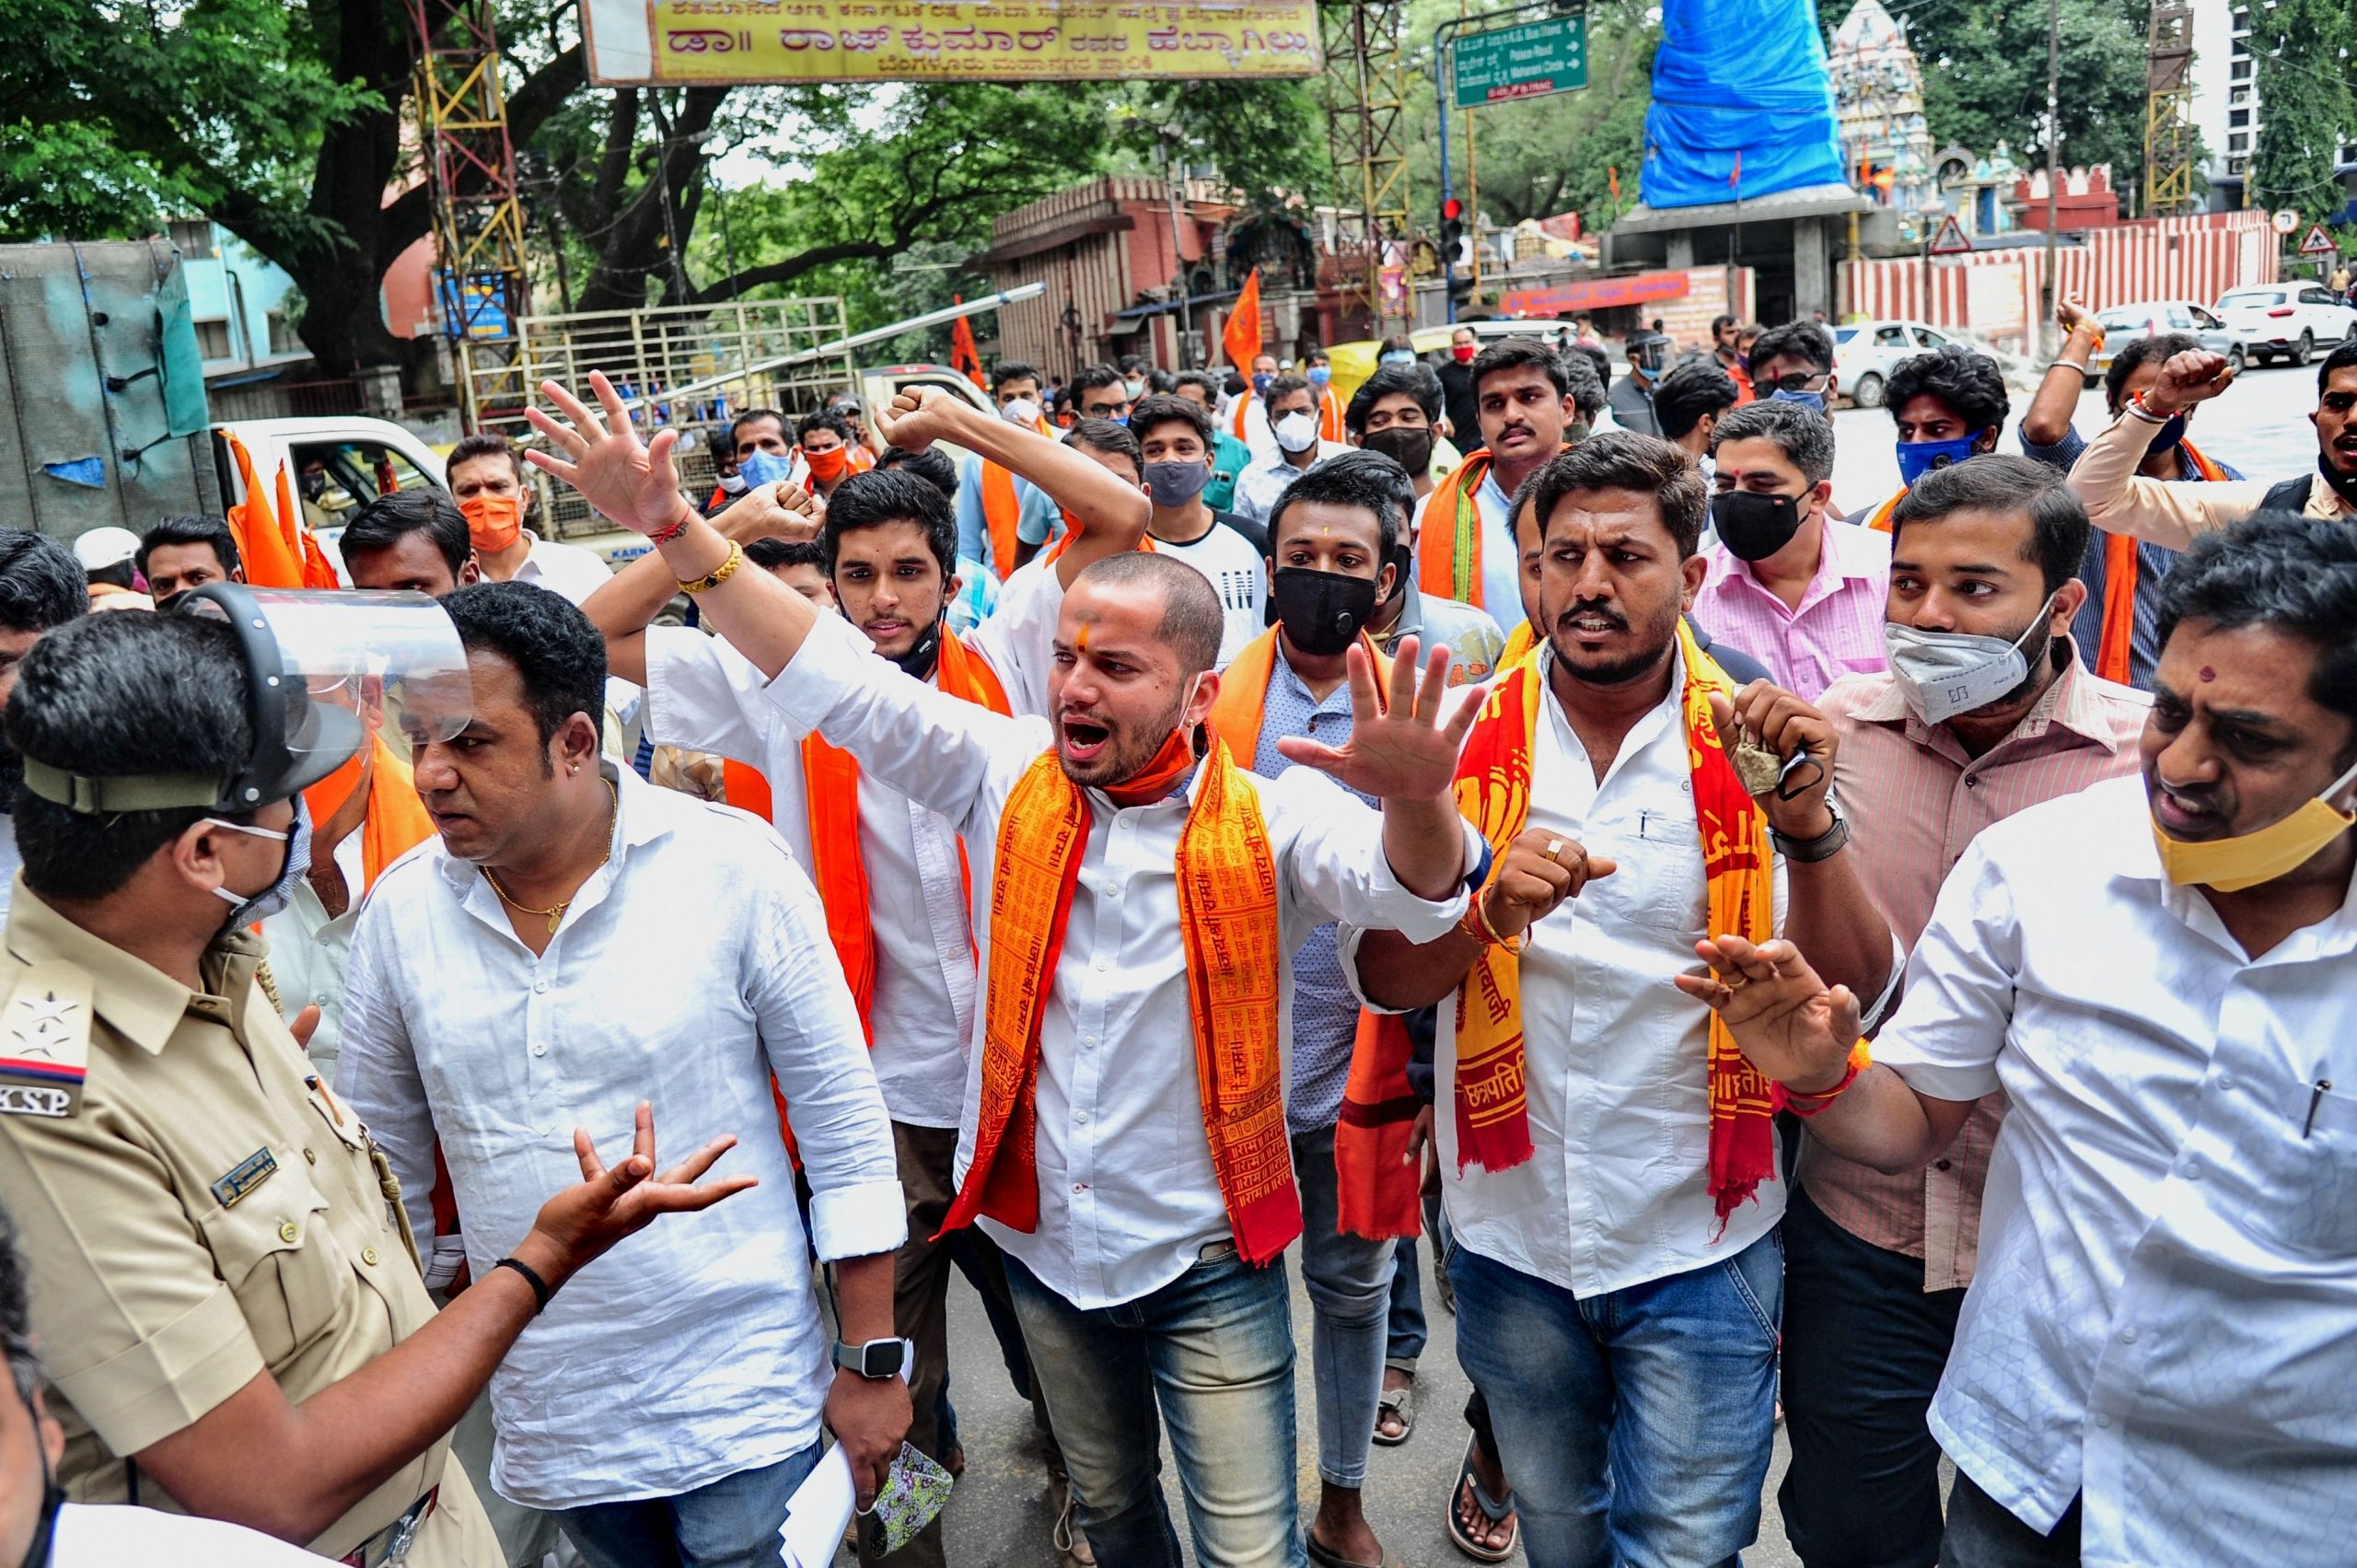 """A policeman (L) gestures towards activists of Hindu religious organisation 'Bajrang Dal' during a protest against the violence that broke out in Devara Jevana Halli in Bangalore on August 13, 2020, after a """"derogatory"""" Facebook post about the Prophet Mohammed sparked riots.(Photo by Manjunath Kiran / AFP)"""